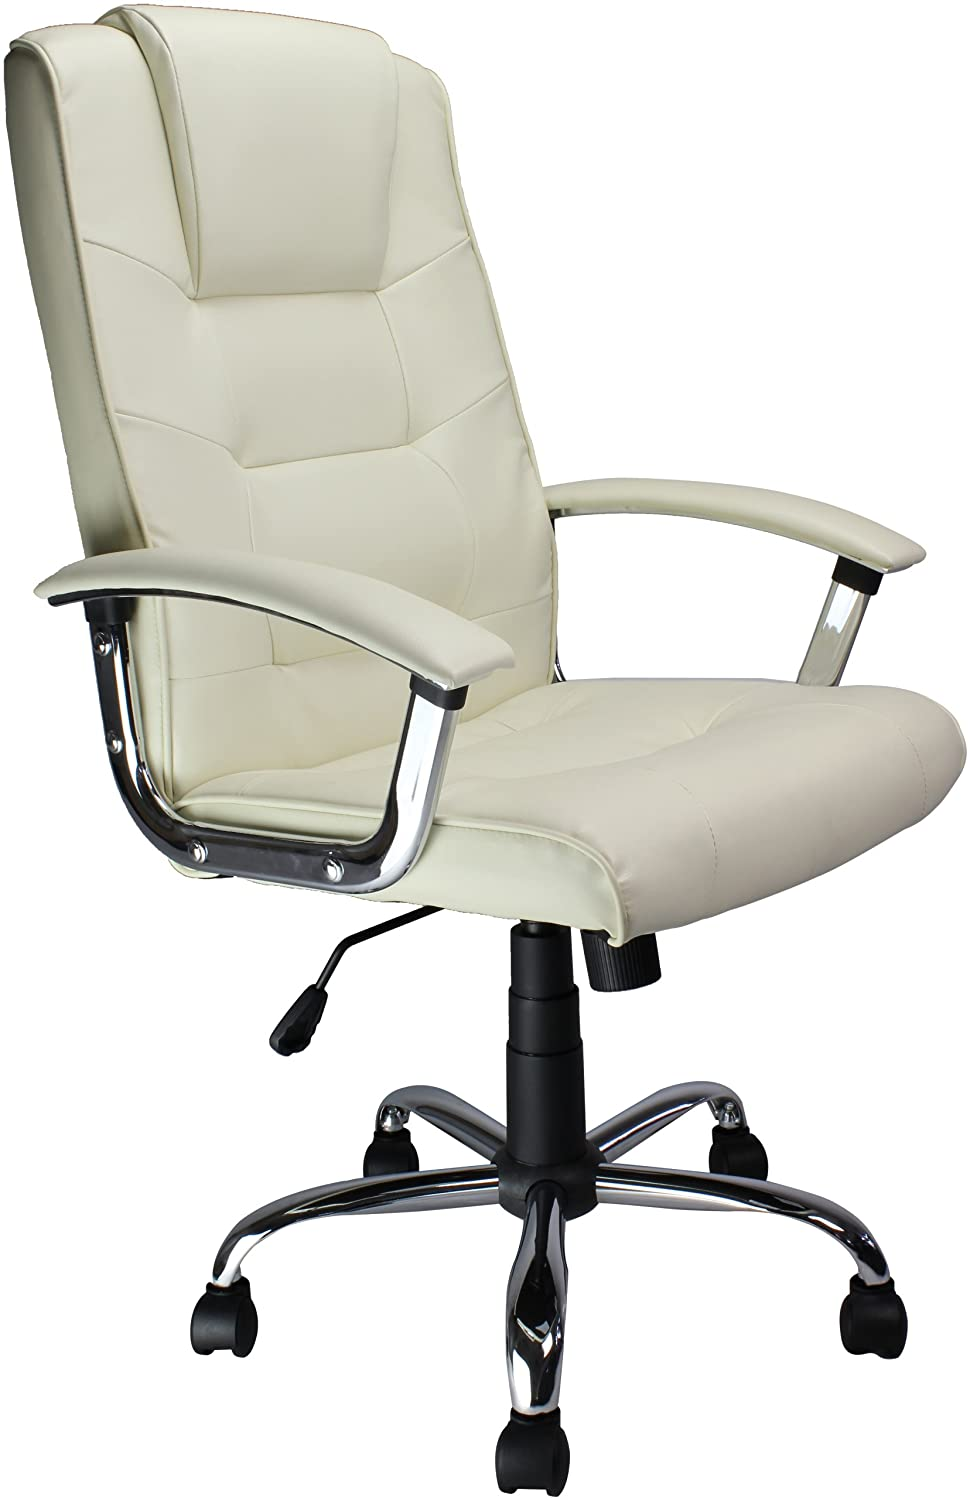 Eliza Tinsley High Back Leather Faced Executive Armchair With - Cream desk chair